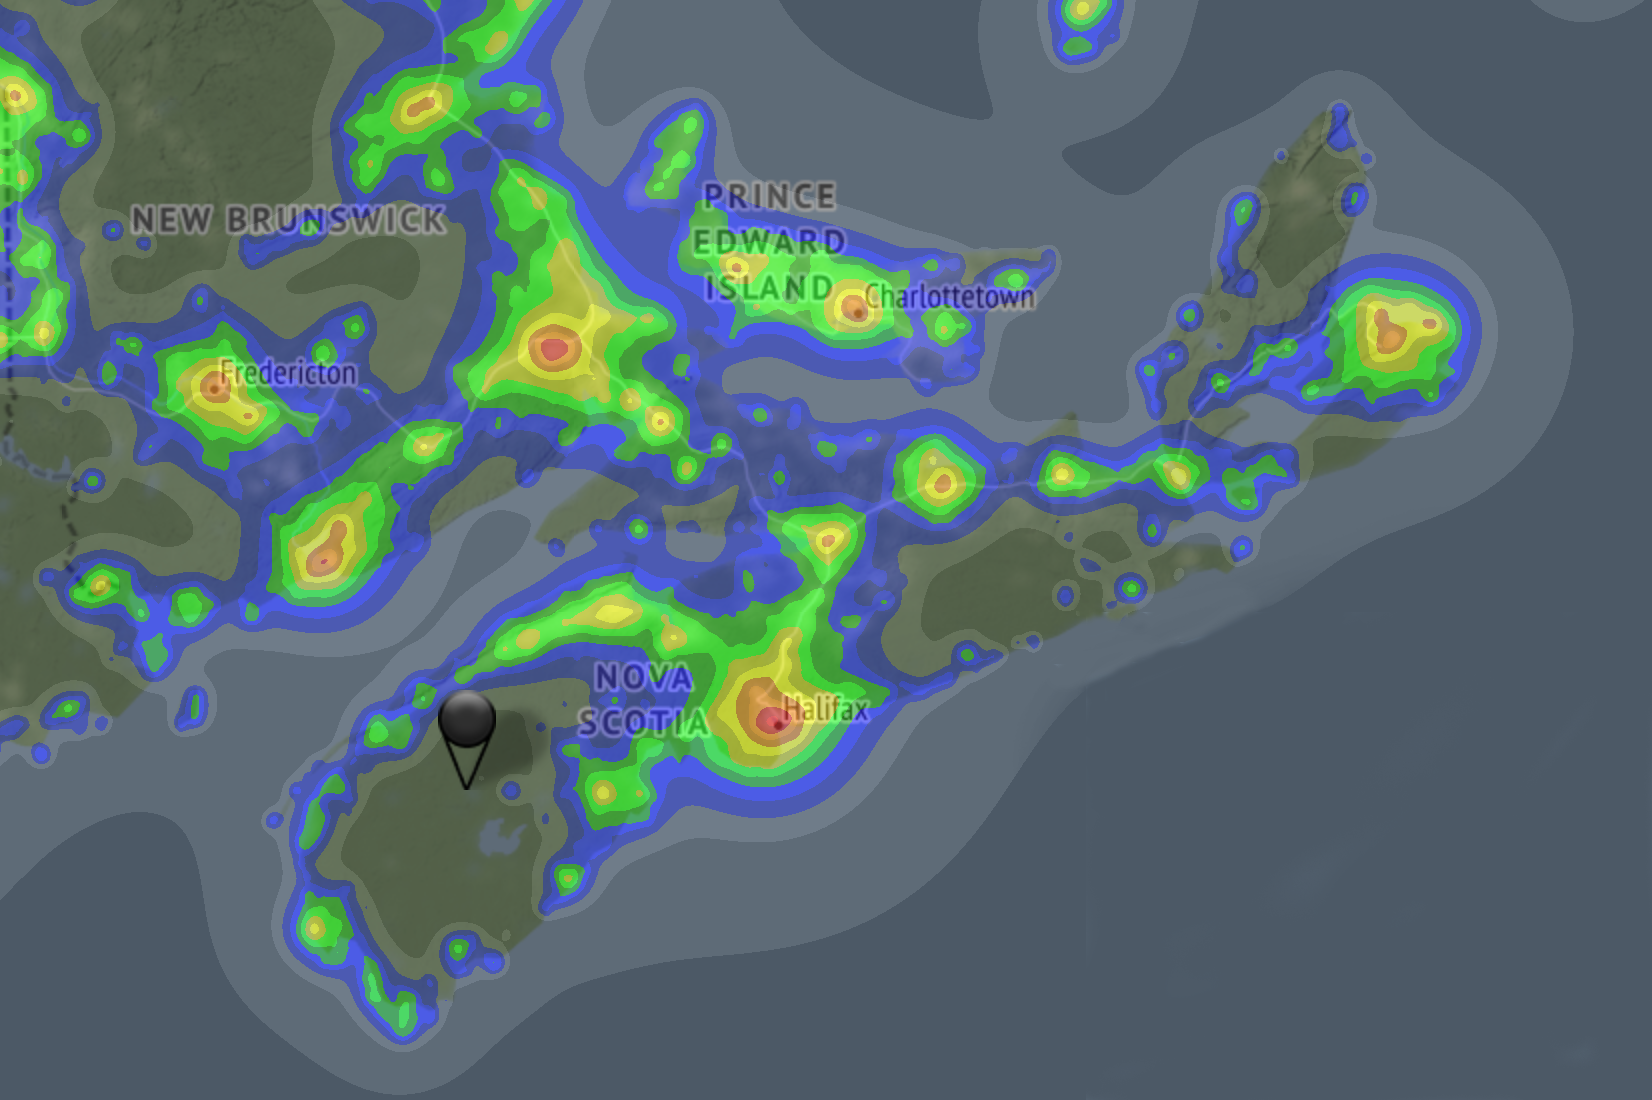 Light Pollution Map for Nova Scotia